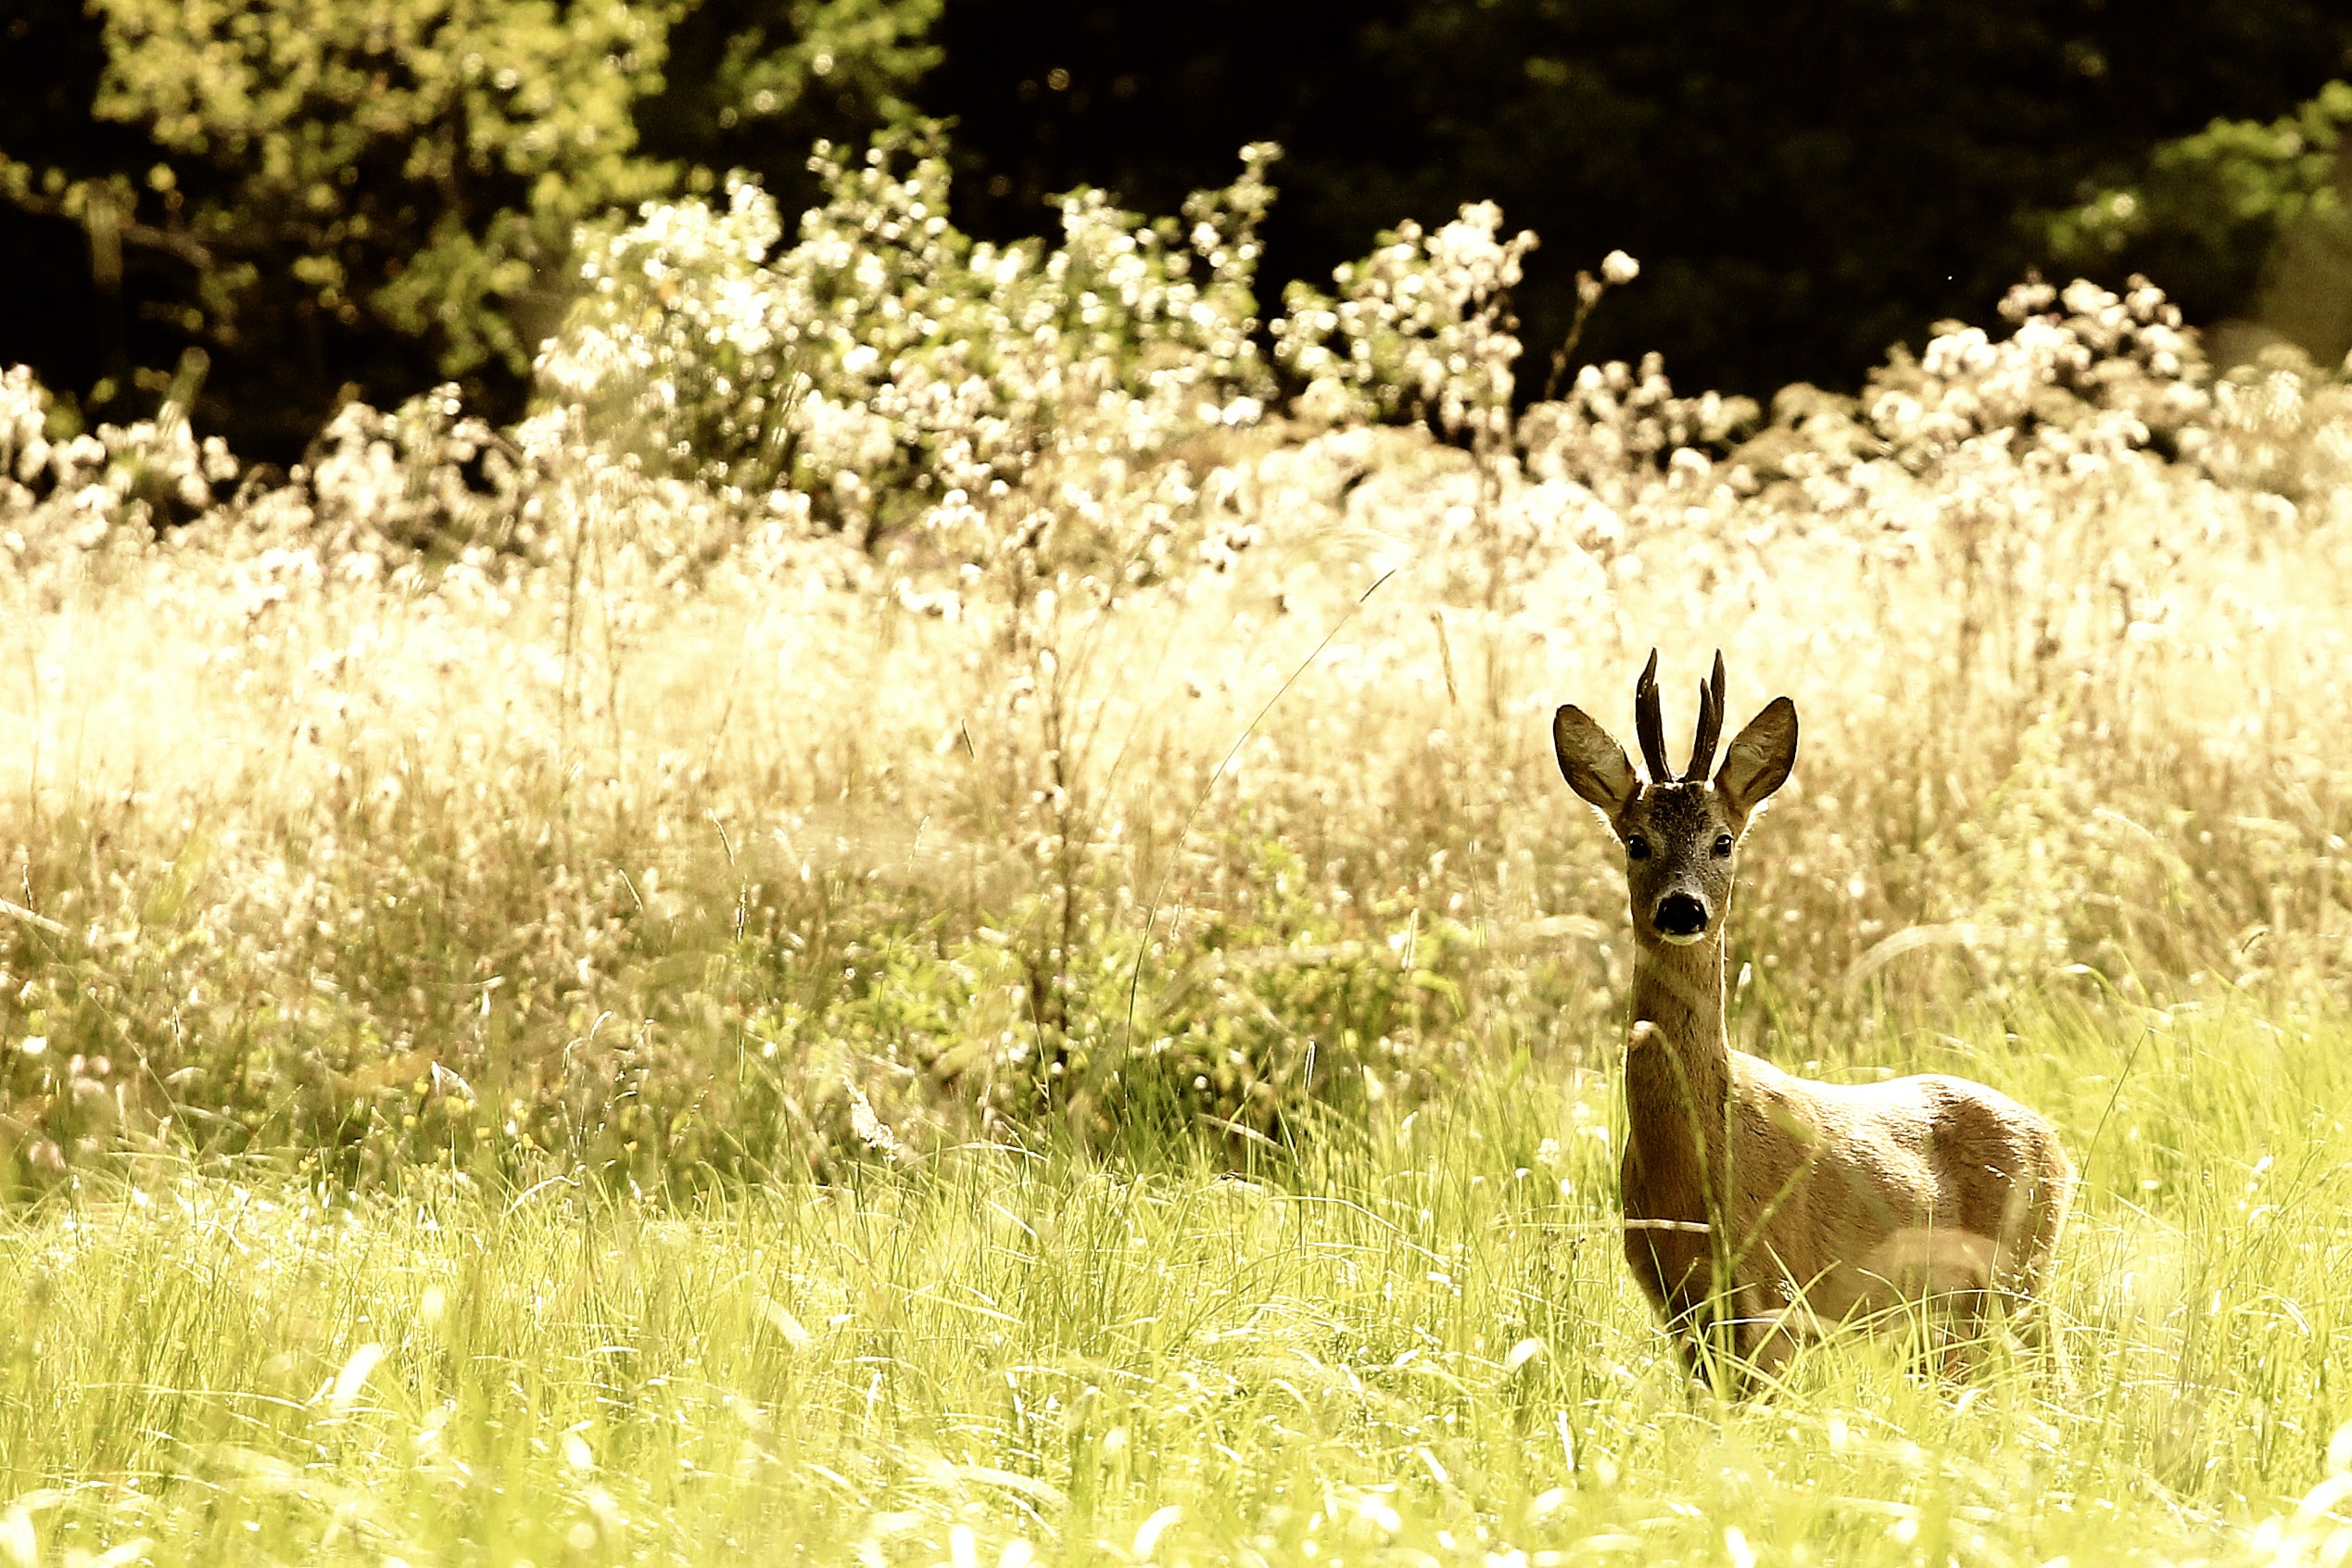 deer on grass field during daytime